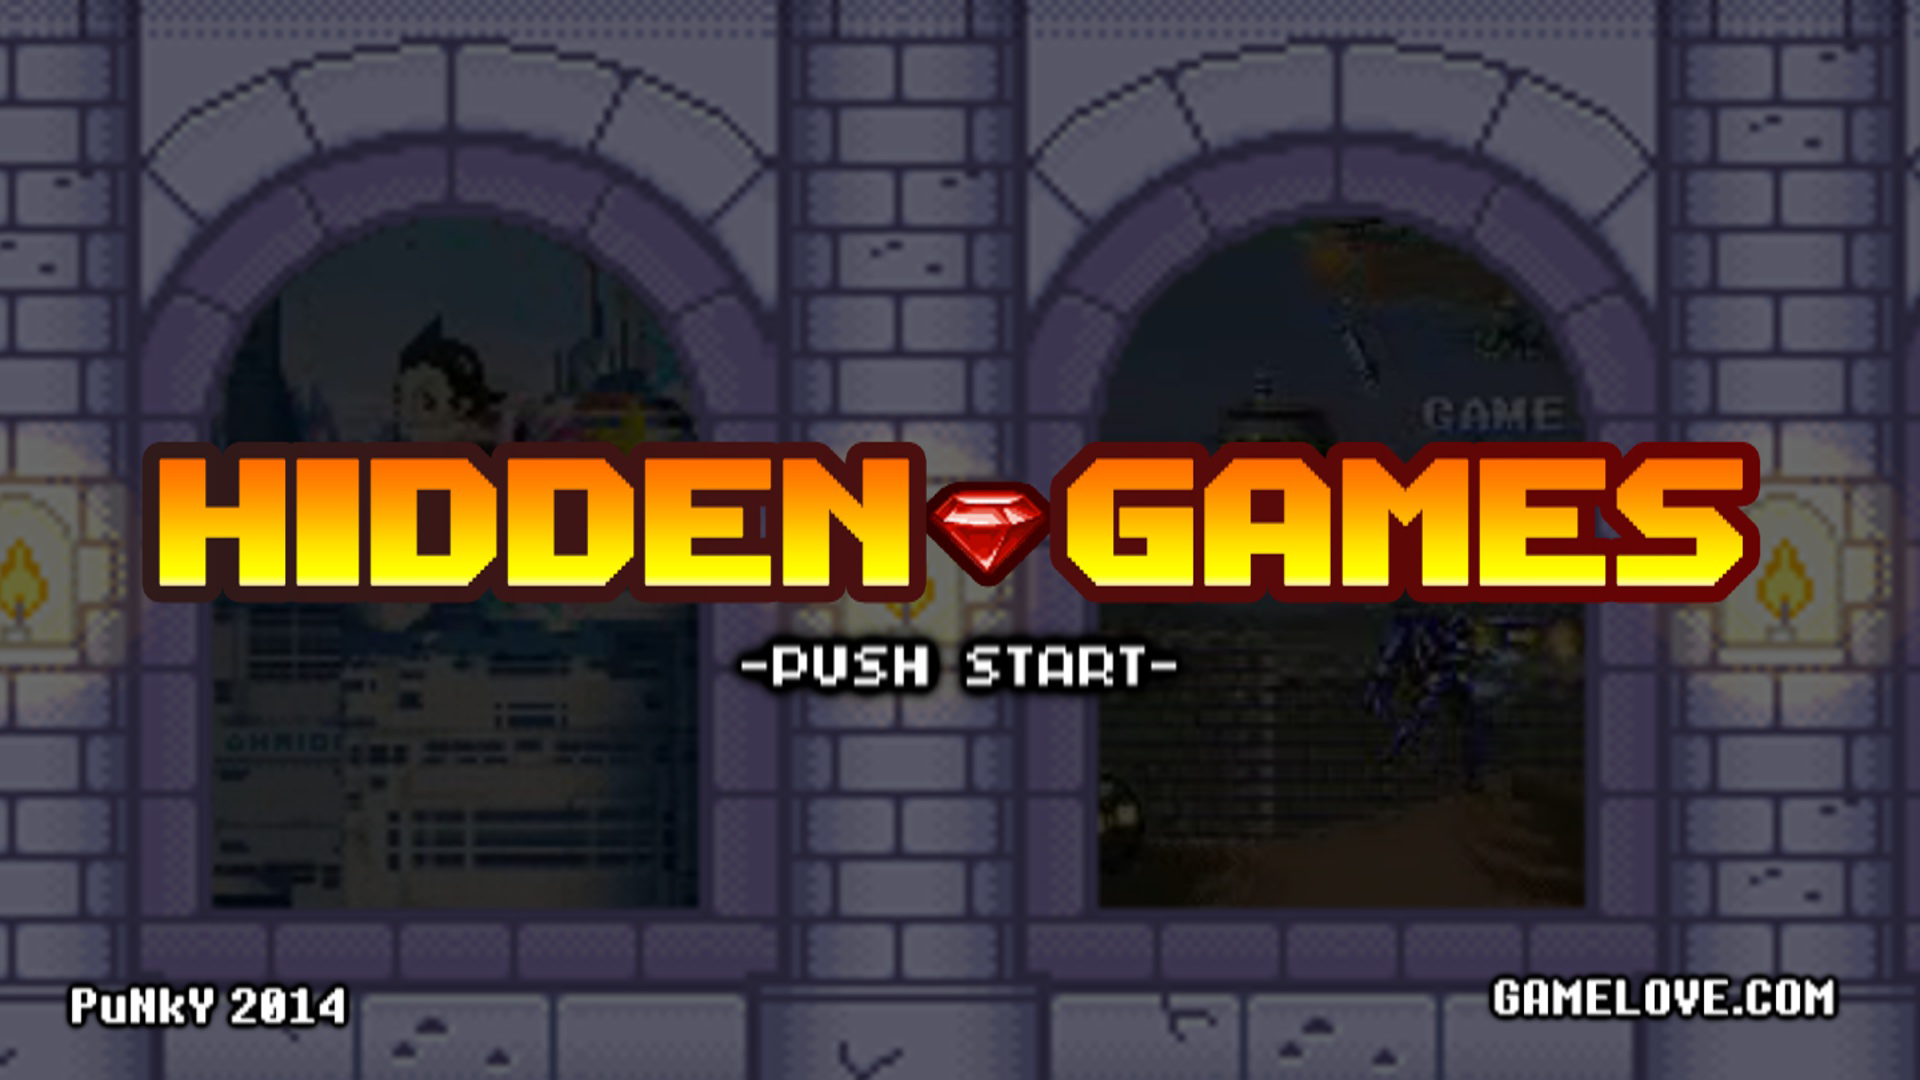 HIDDEN GAMES - GAMELOVE.COM